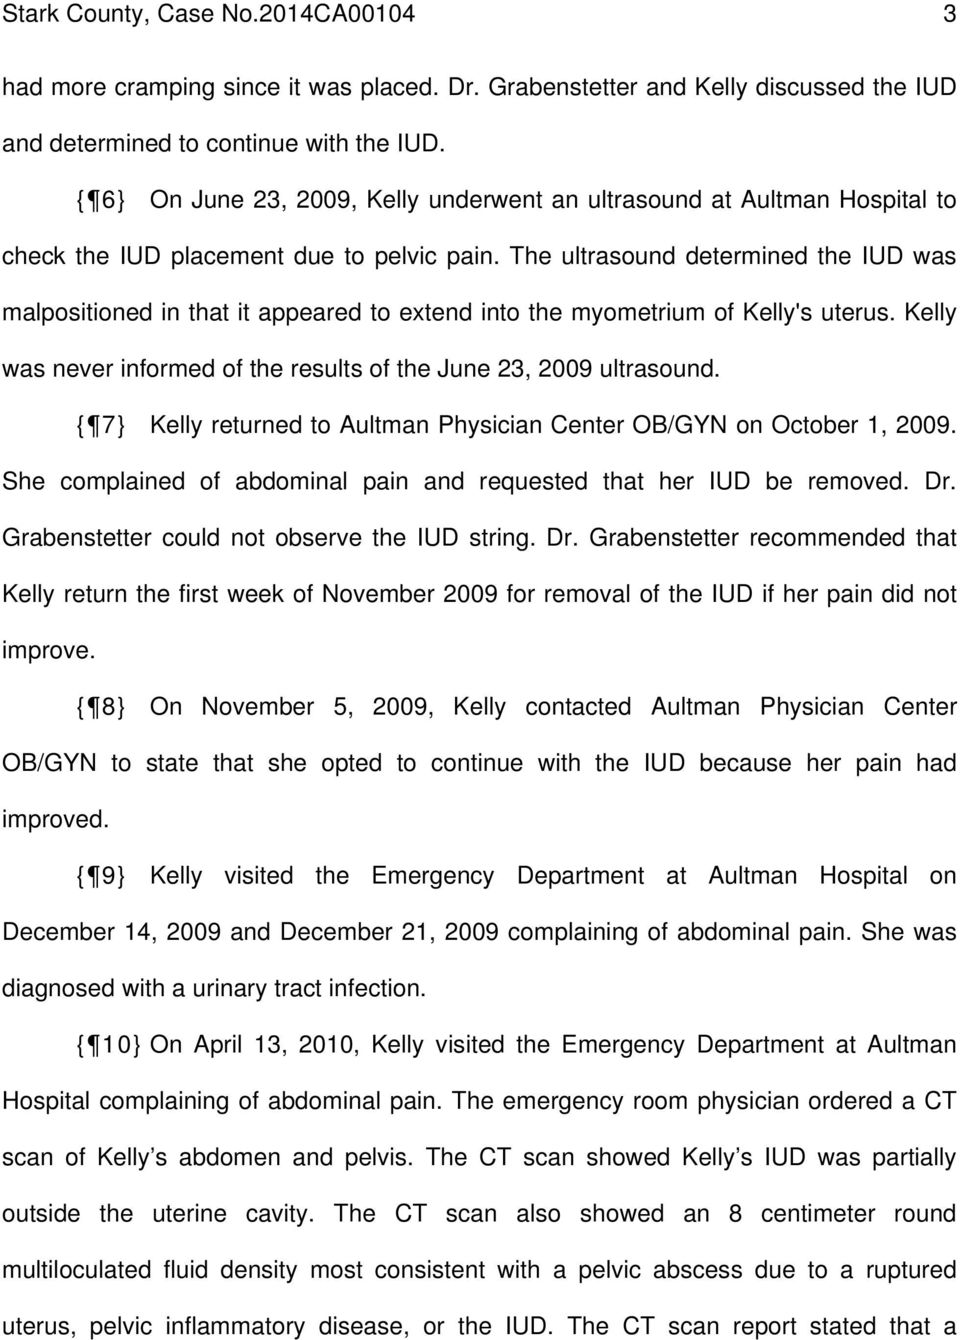 The ultrasound determined the IUD was malpositioned in that it appeared to extend into the myometrium of Kelly's uterus. Kelly was never informed of the results of the June 23, 2009 ultrasound.